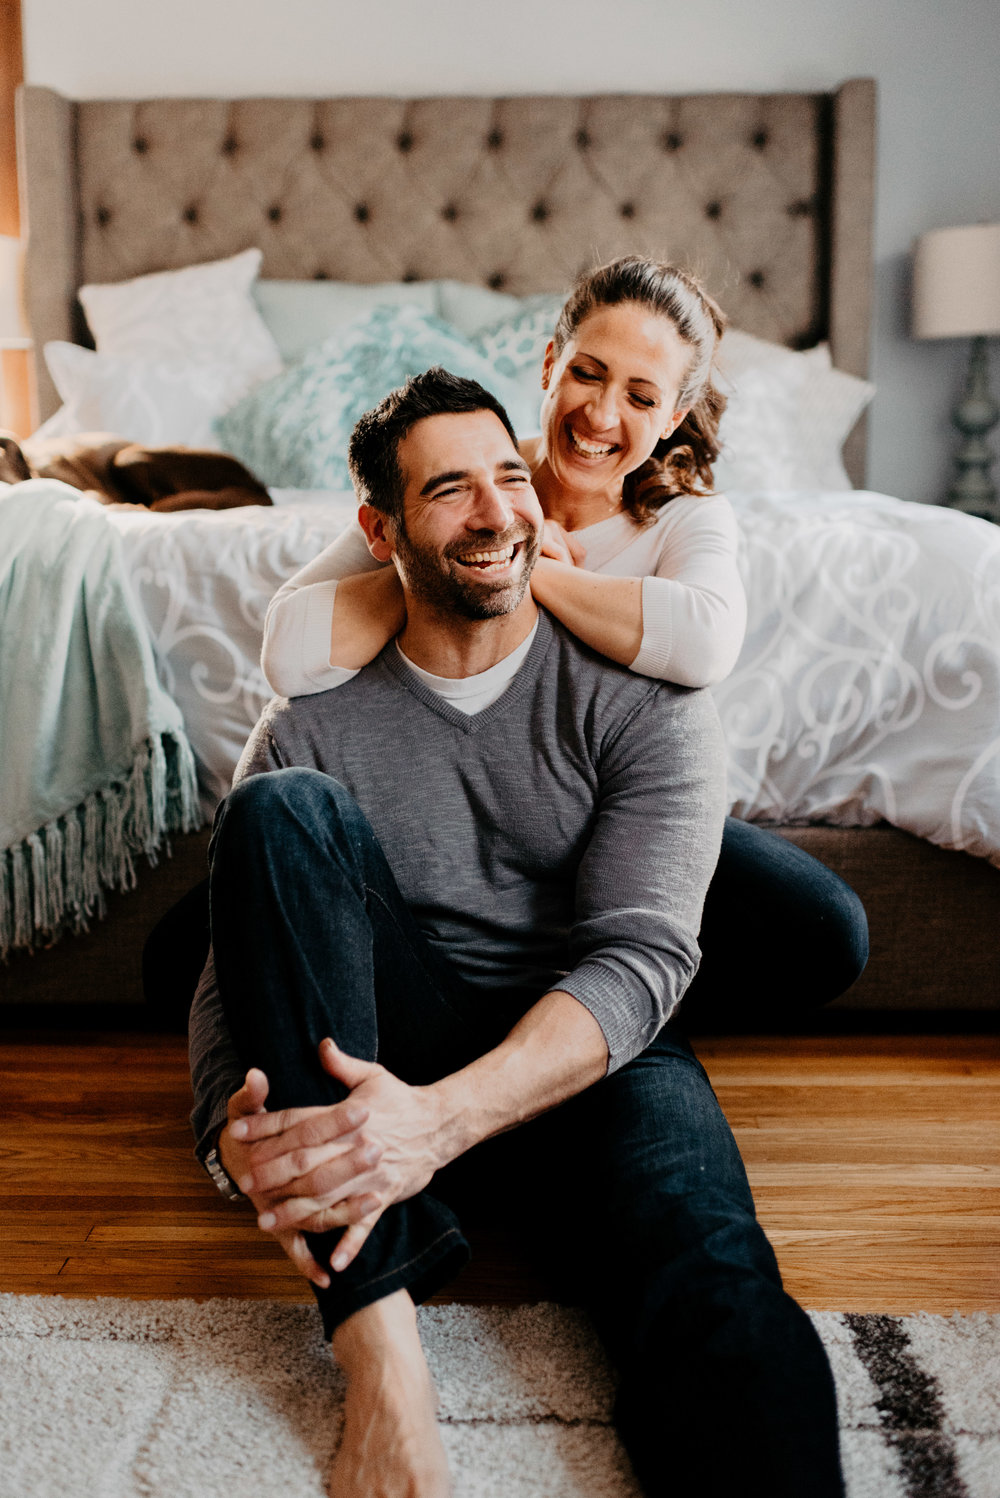 In-home engagement session with afternoon light.